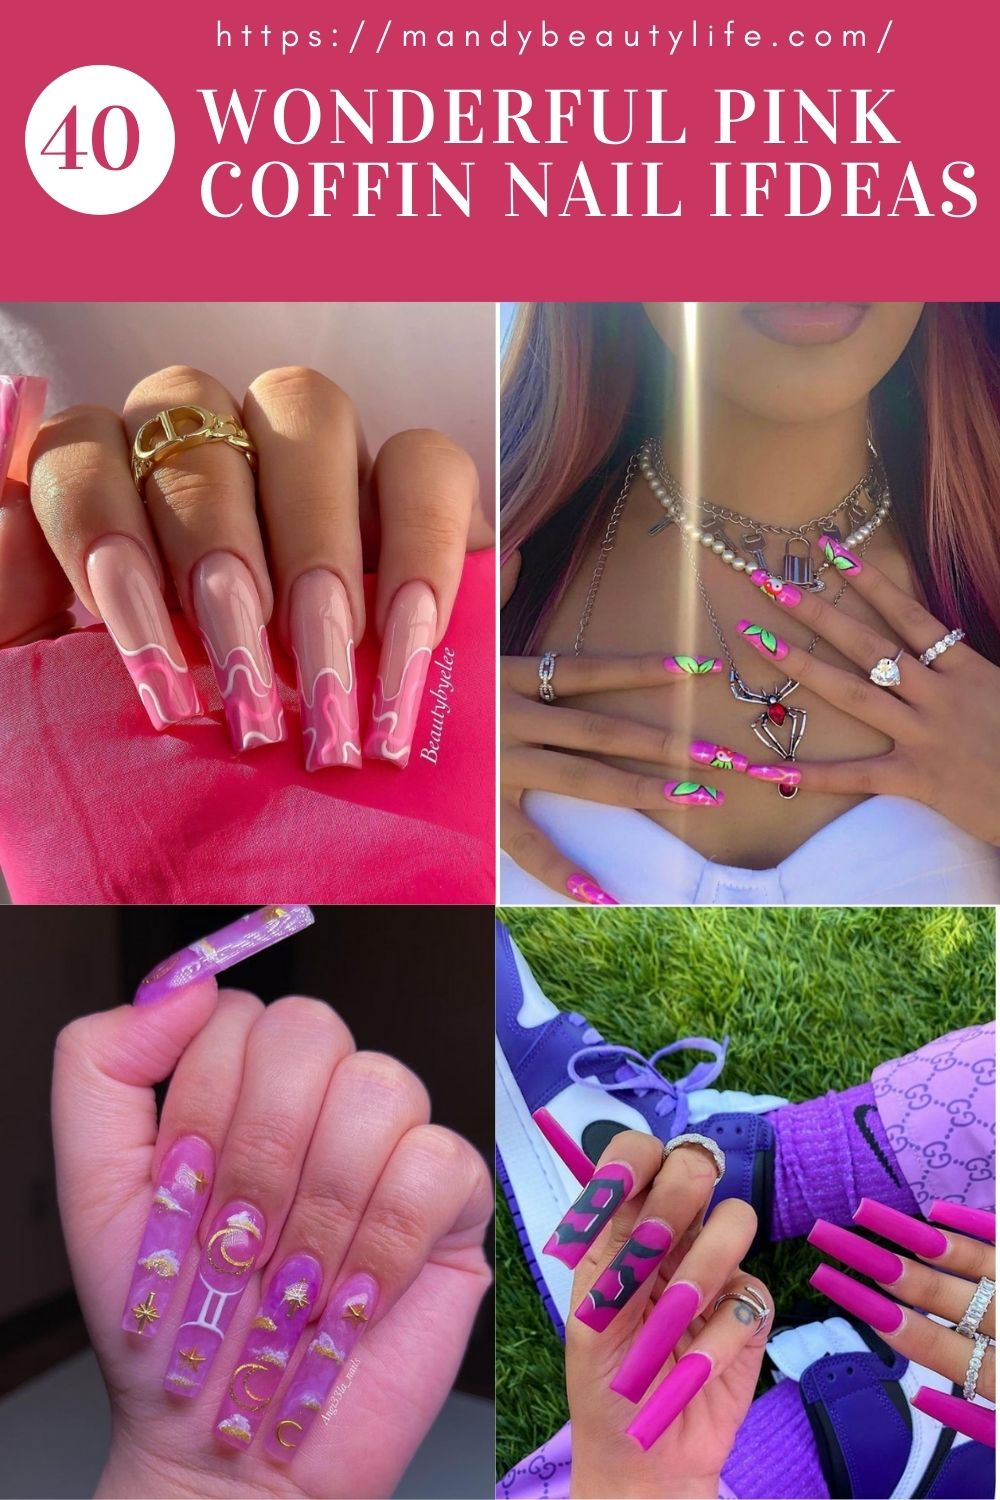 Acrylic Pink Coffin Nails For You When You Go Outdoor!